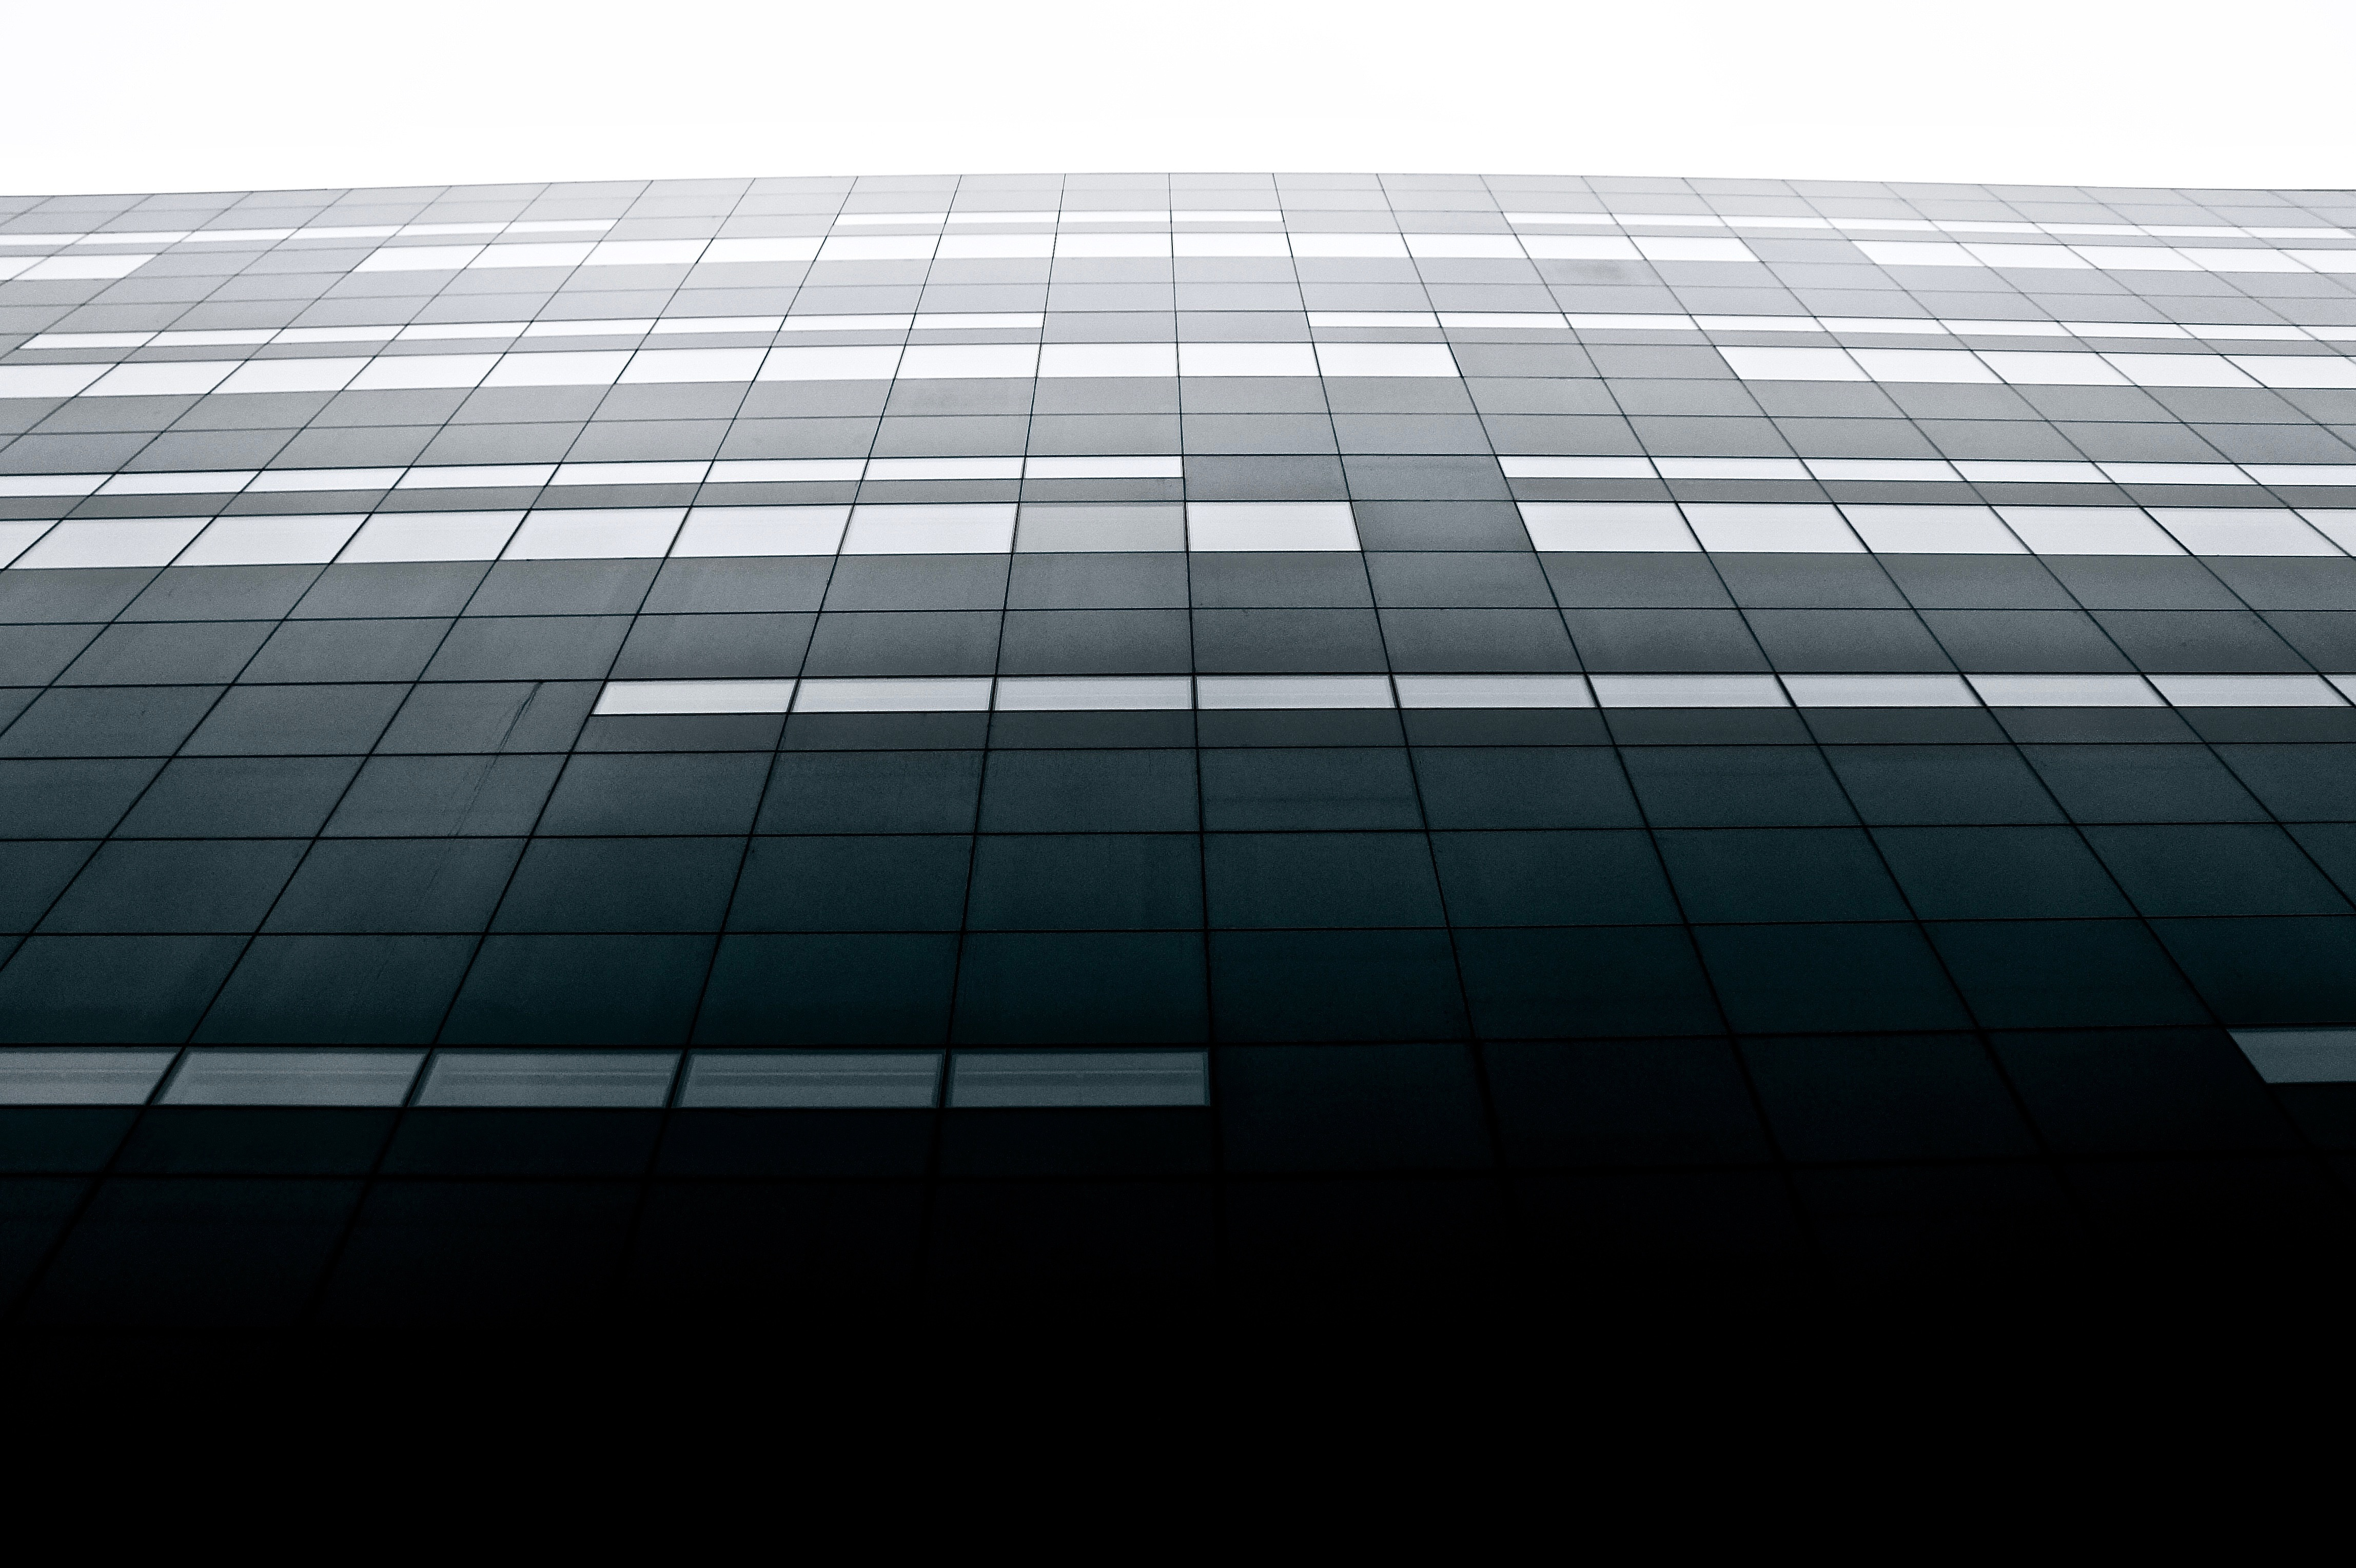 Glass facade, photography, architecture, black and white, glasses, reflection